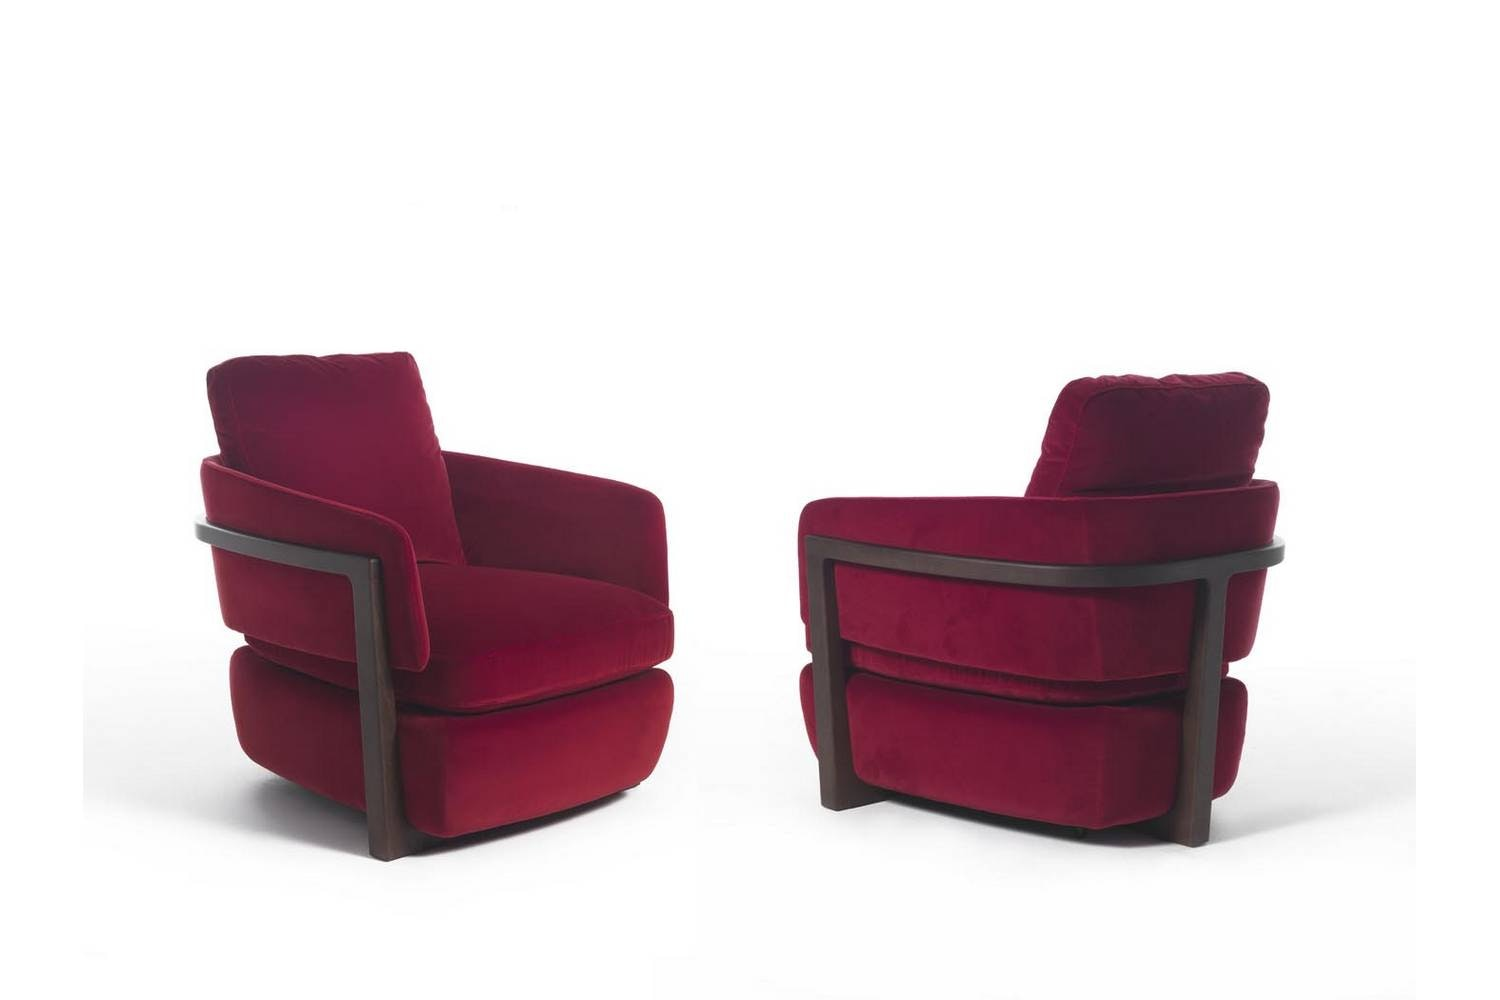 Arena Armchair by Emmanuel Gallina for Porada